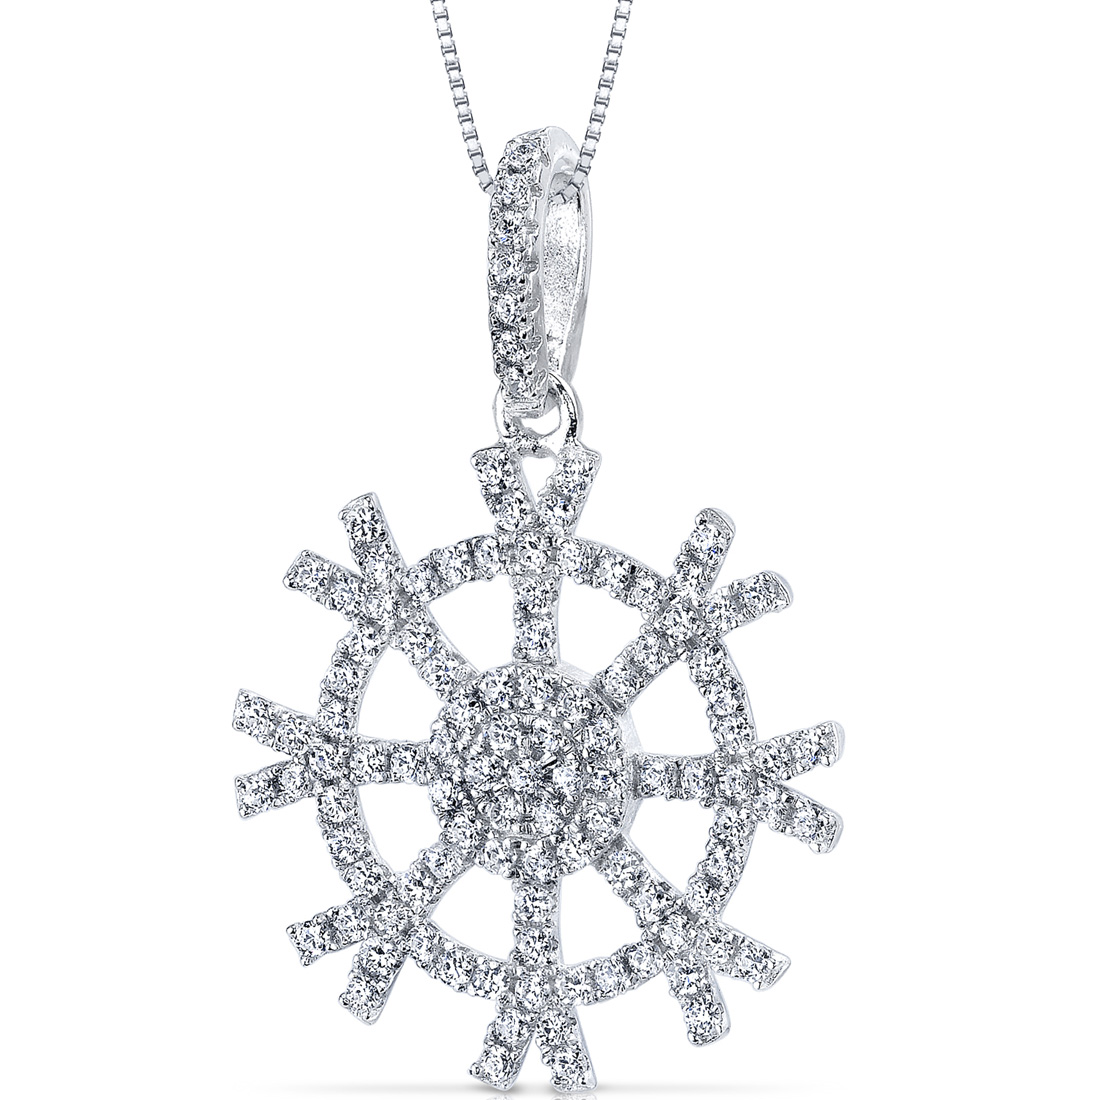 peora Snowflake Design Machine Cut White CZ Sterling Silver Rhodium Finish Pendant with 18 inch Necklace at Sears.com